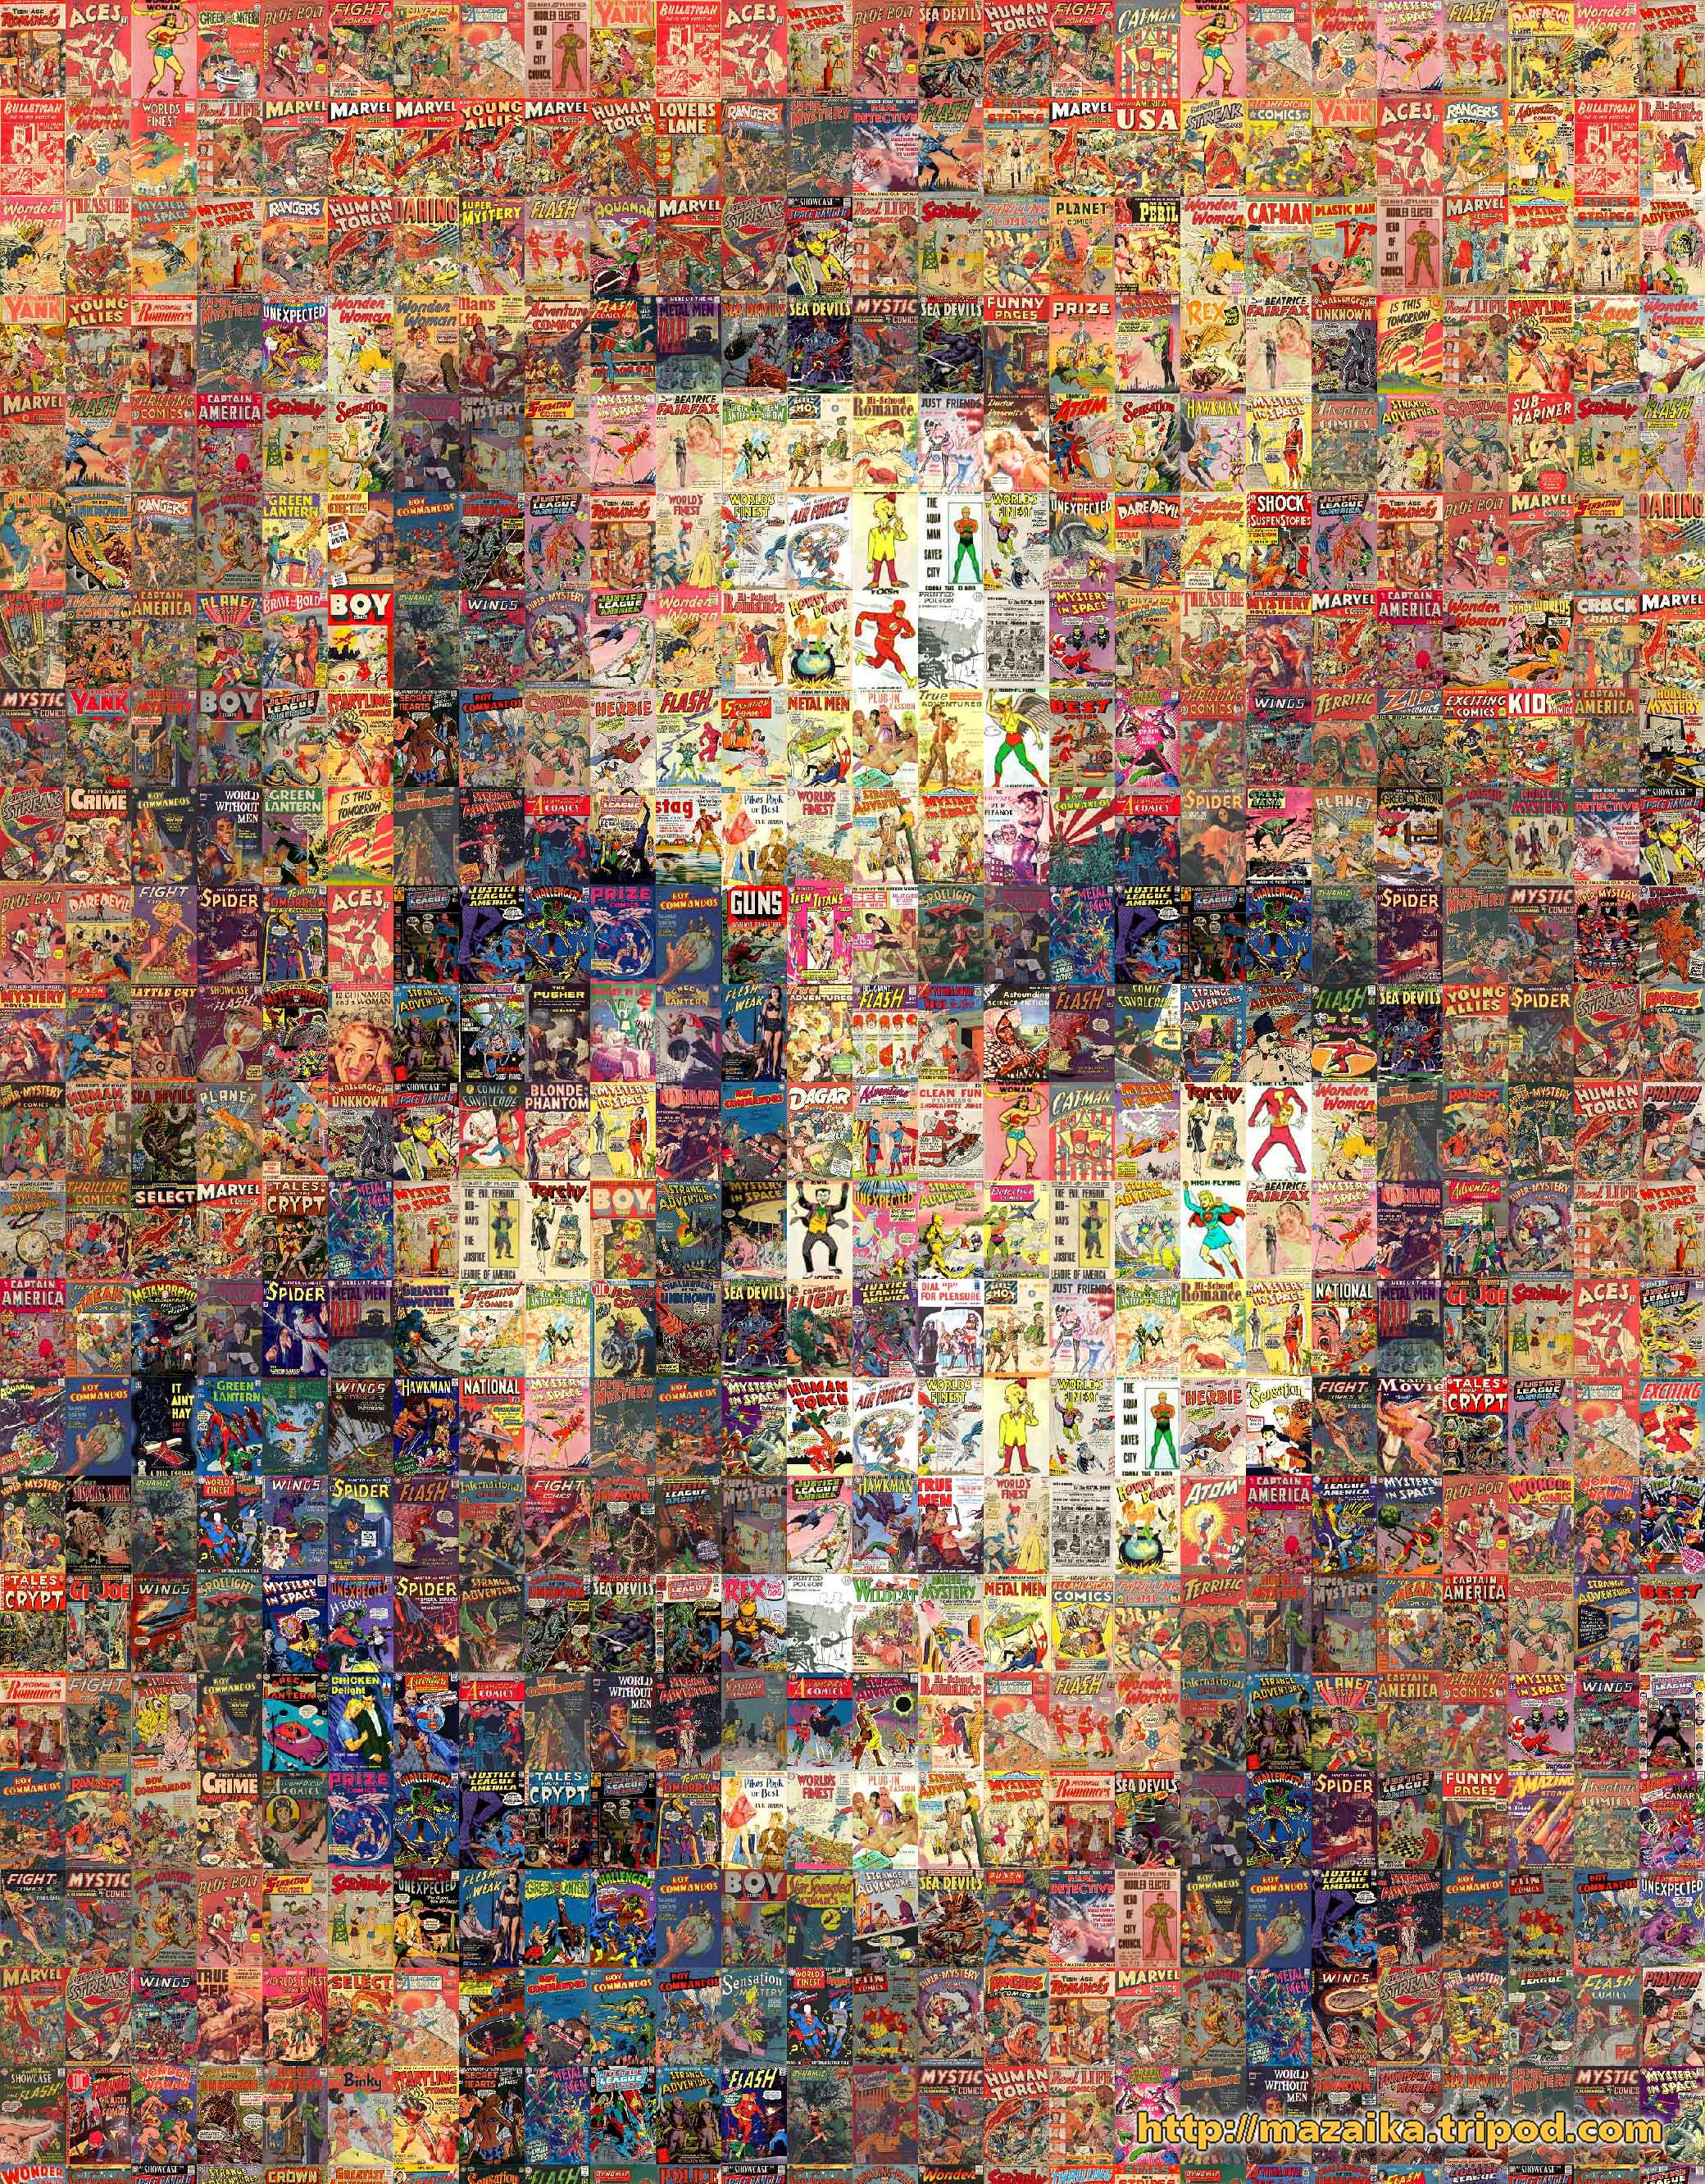 First Gallery of Photographic Mosaic Pictures